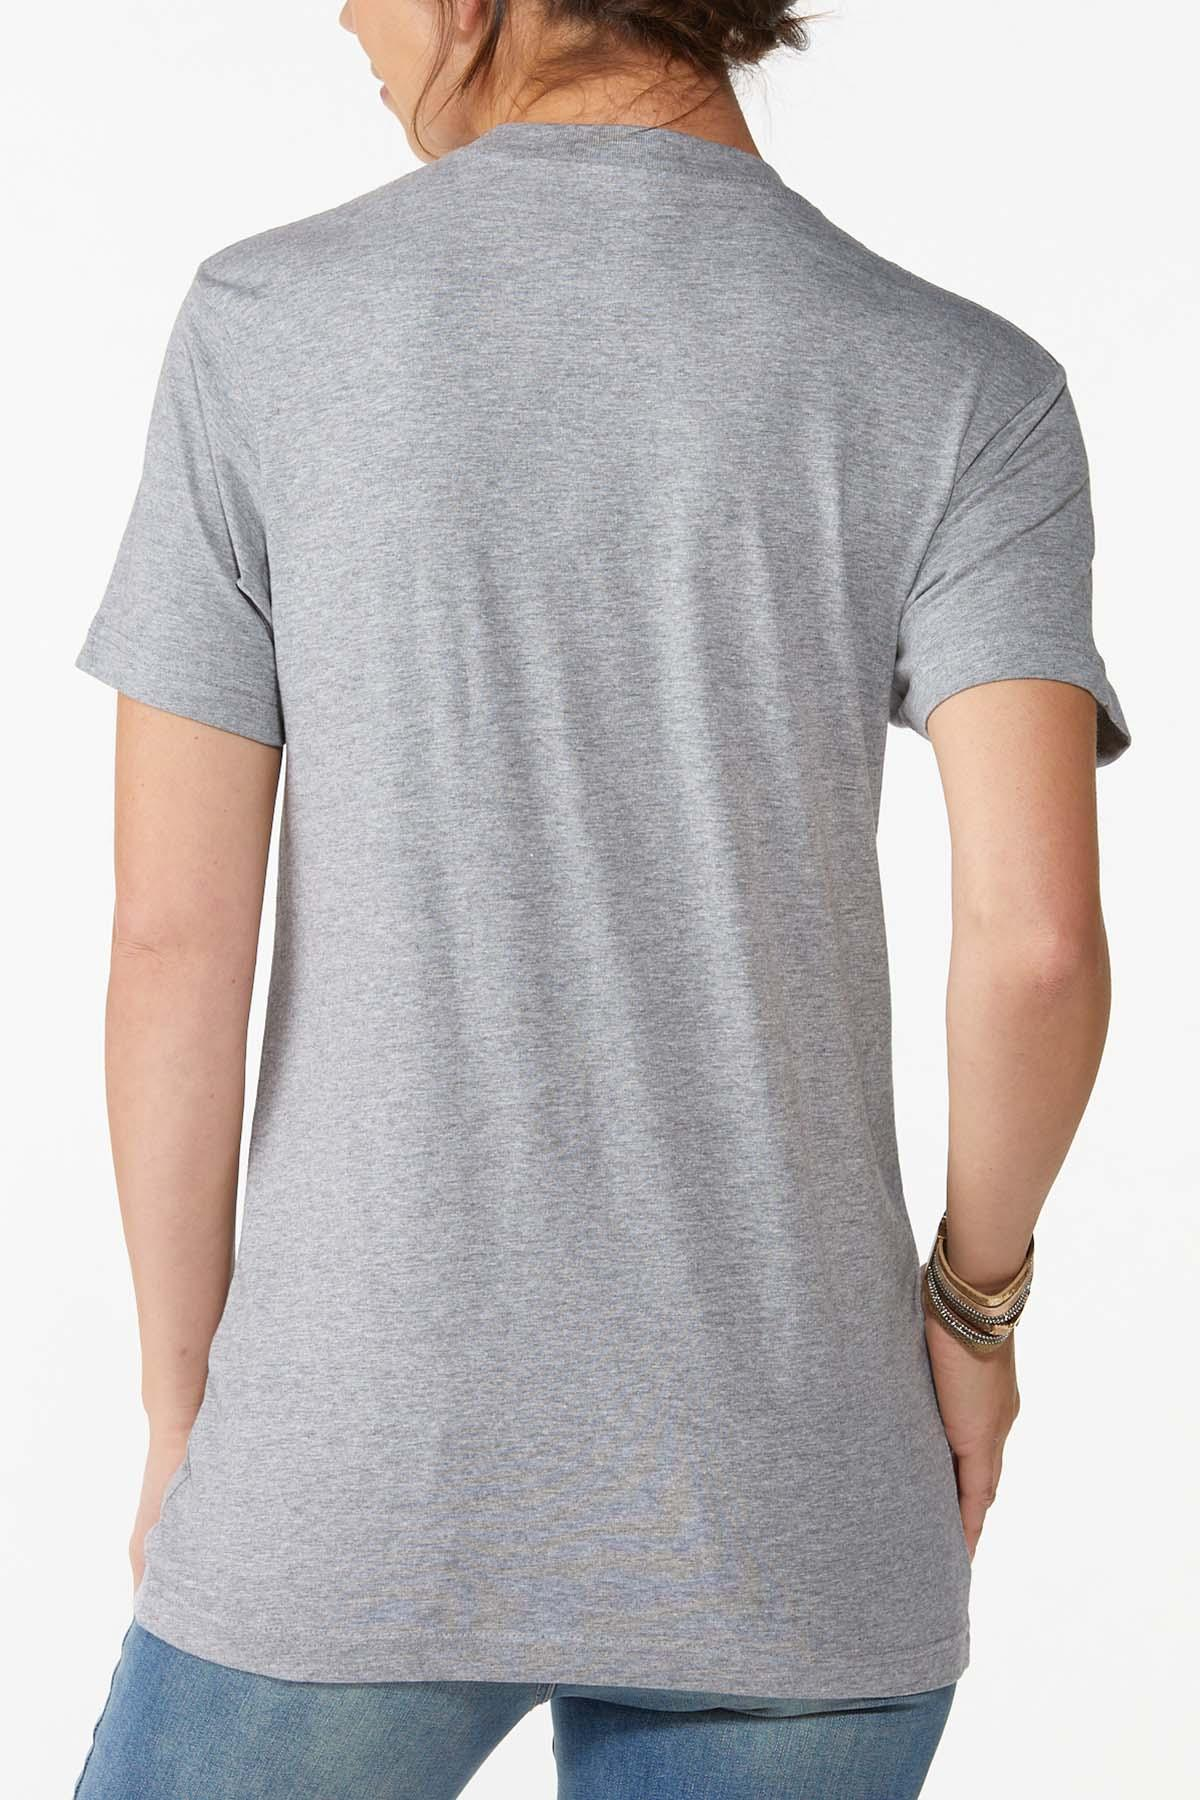 Today Is The Day Tee (Item #44831423)